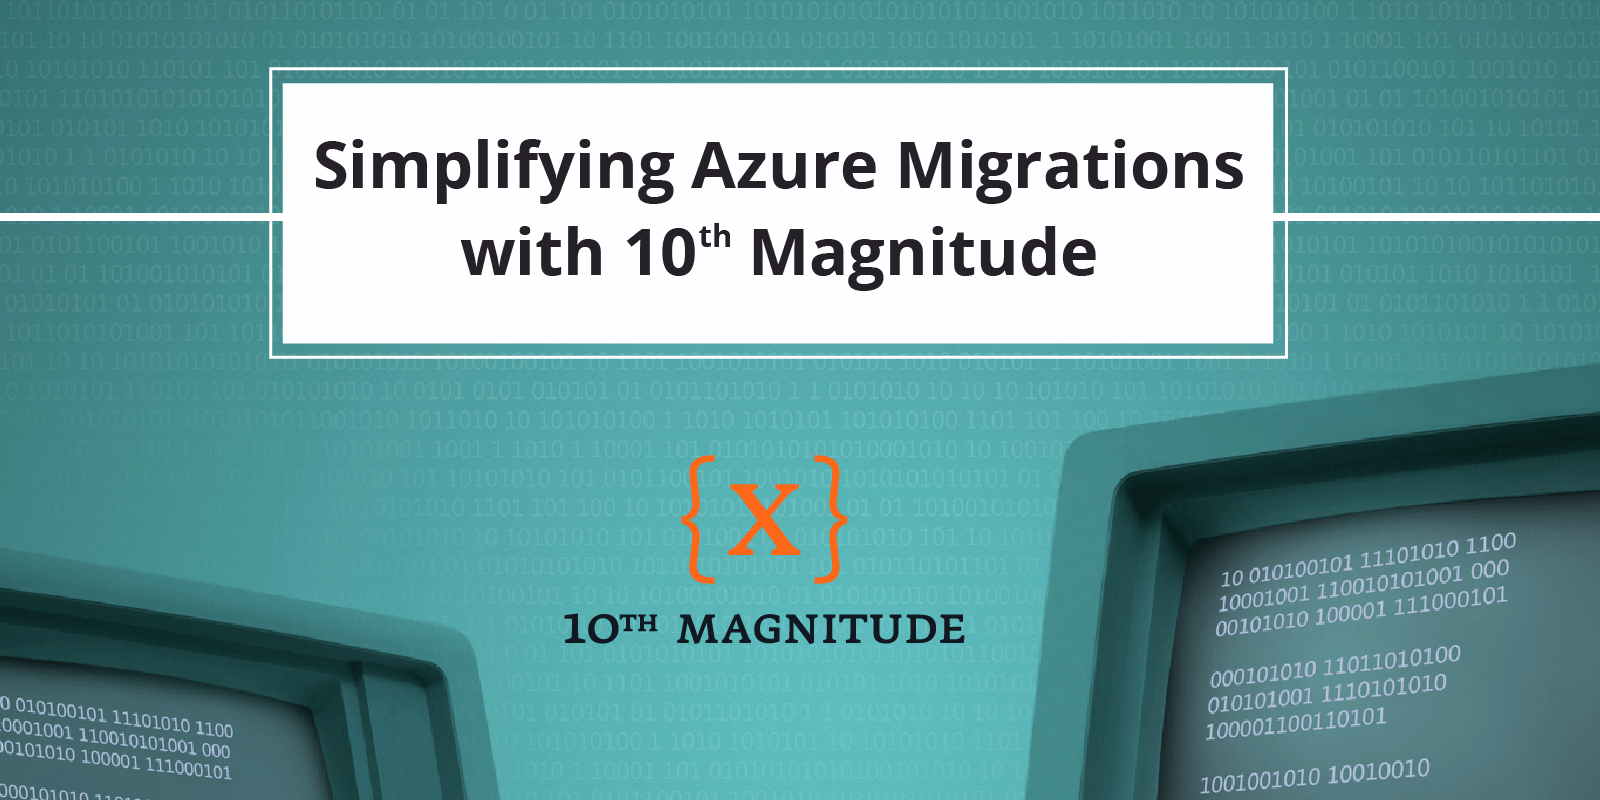 10th Magnitude and KEMP Partner to Simplify Azure Migration